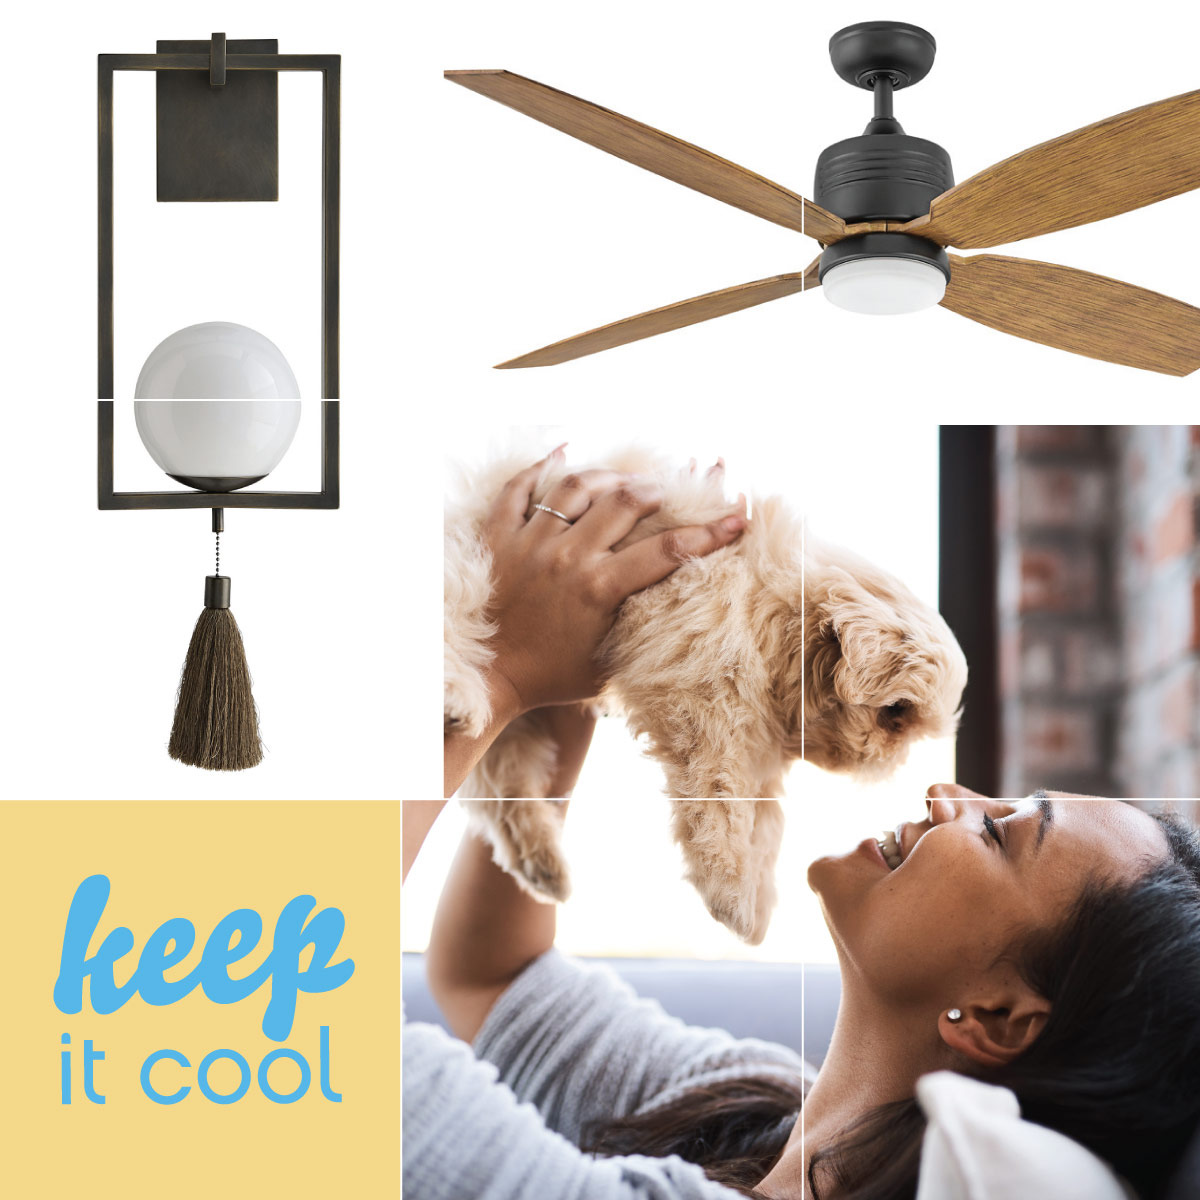 Ceiling Fans help keep you cool